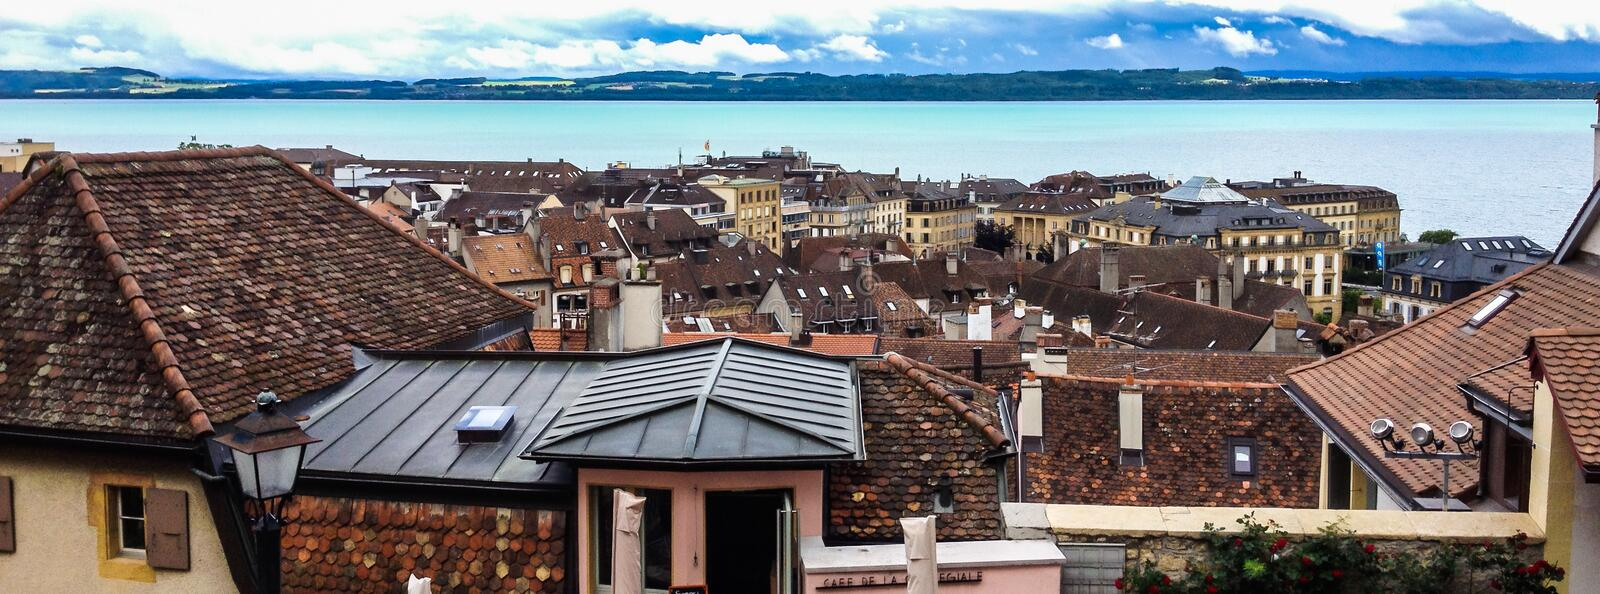 Top view of the medieval town Neuchatel with Lake Neuchatel and the Bernese Alps Chaumont seen on the horizon.  stock photography